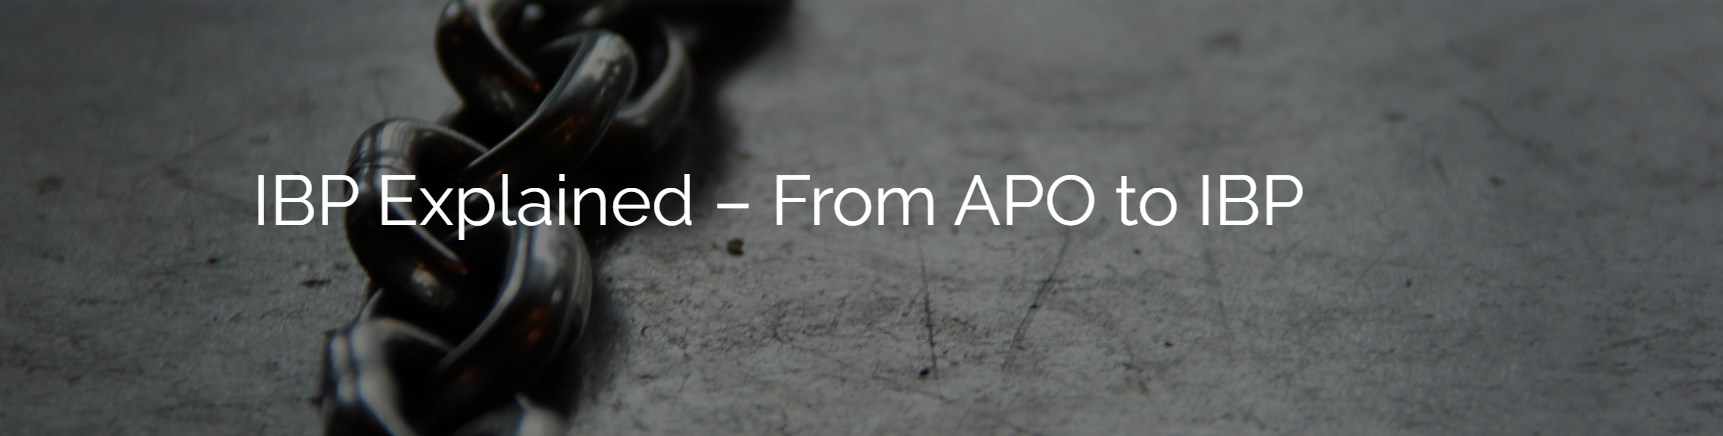 McCoy Webinar: IBP Explained – From APO to IBP